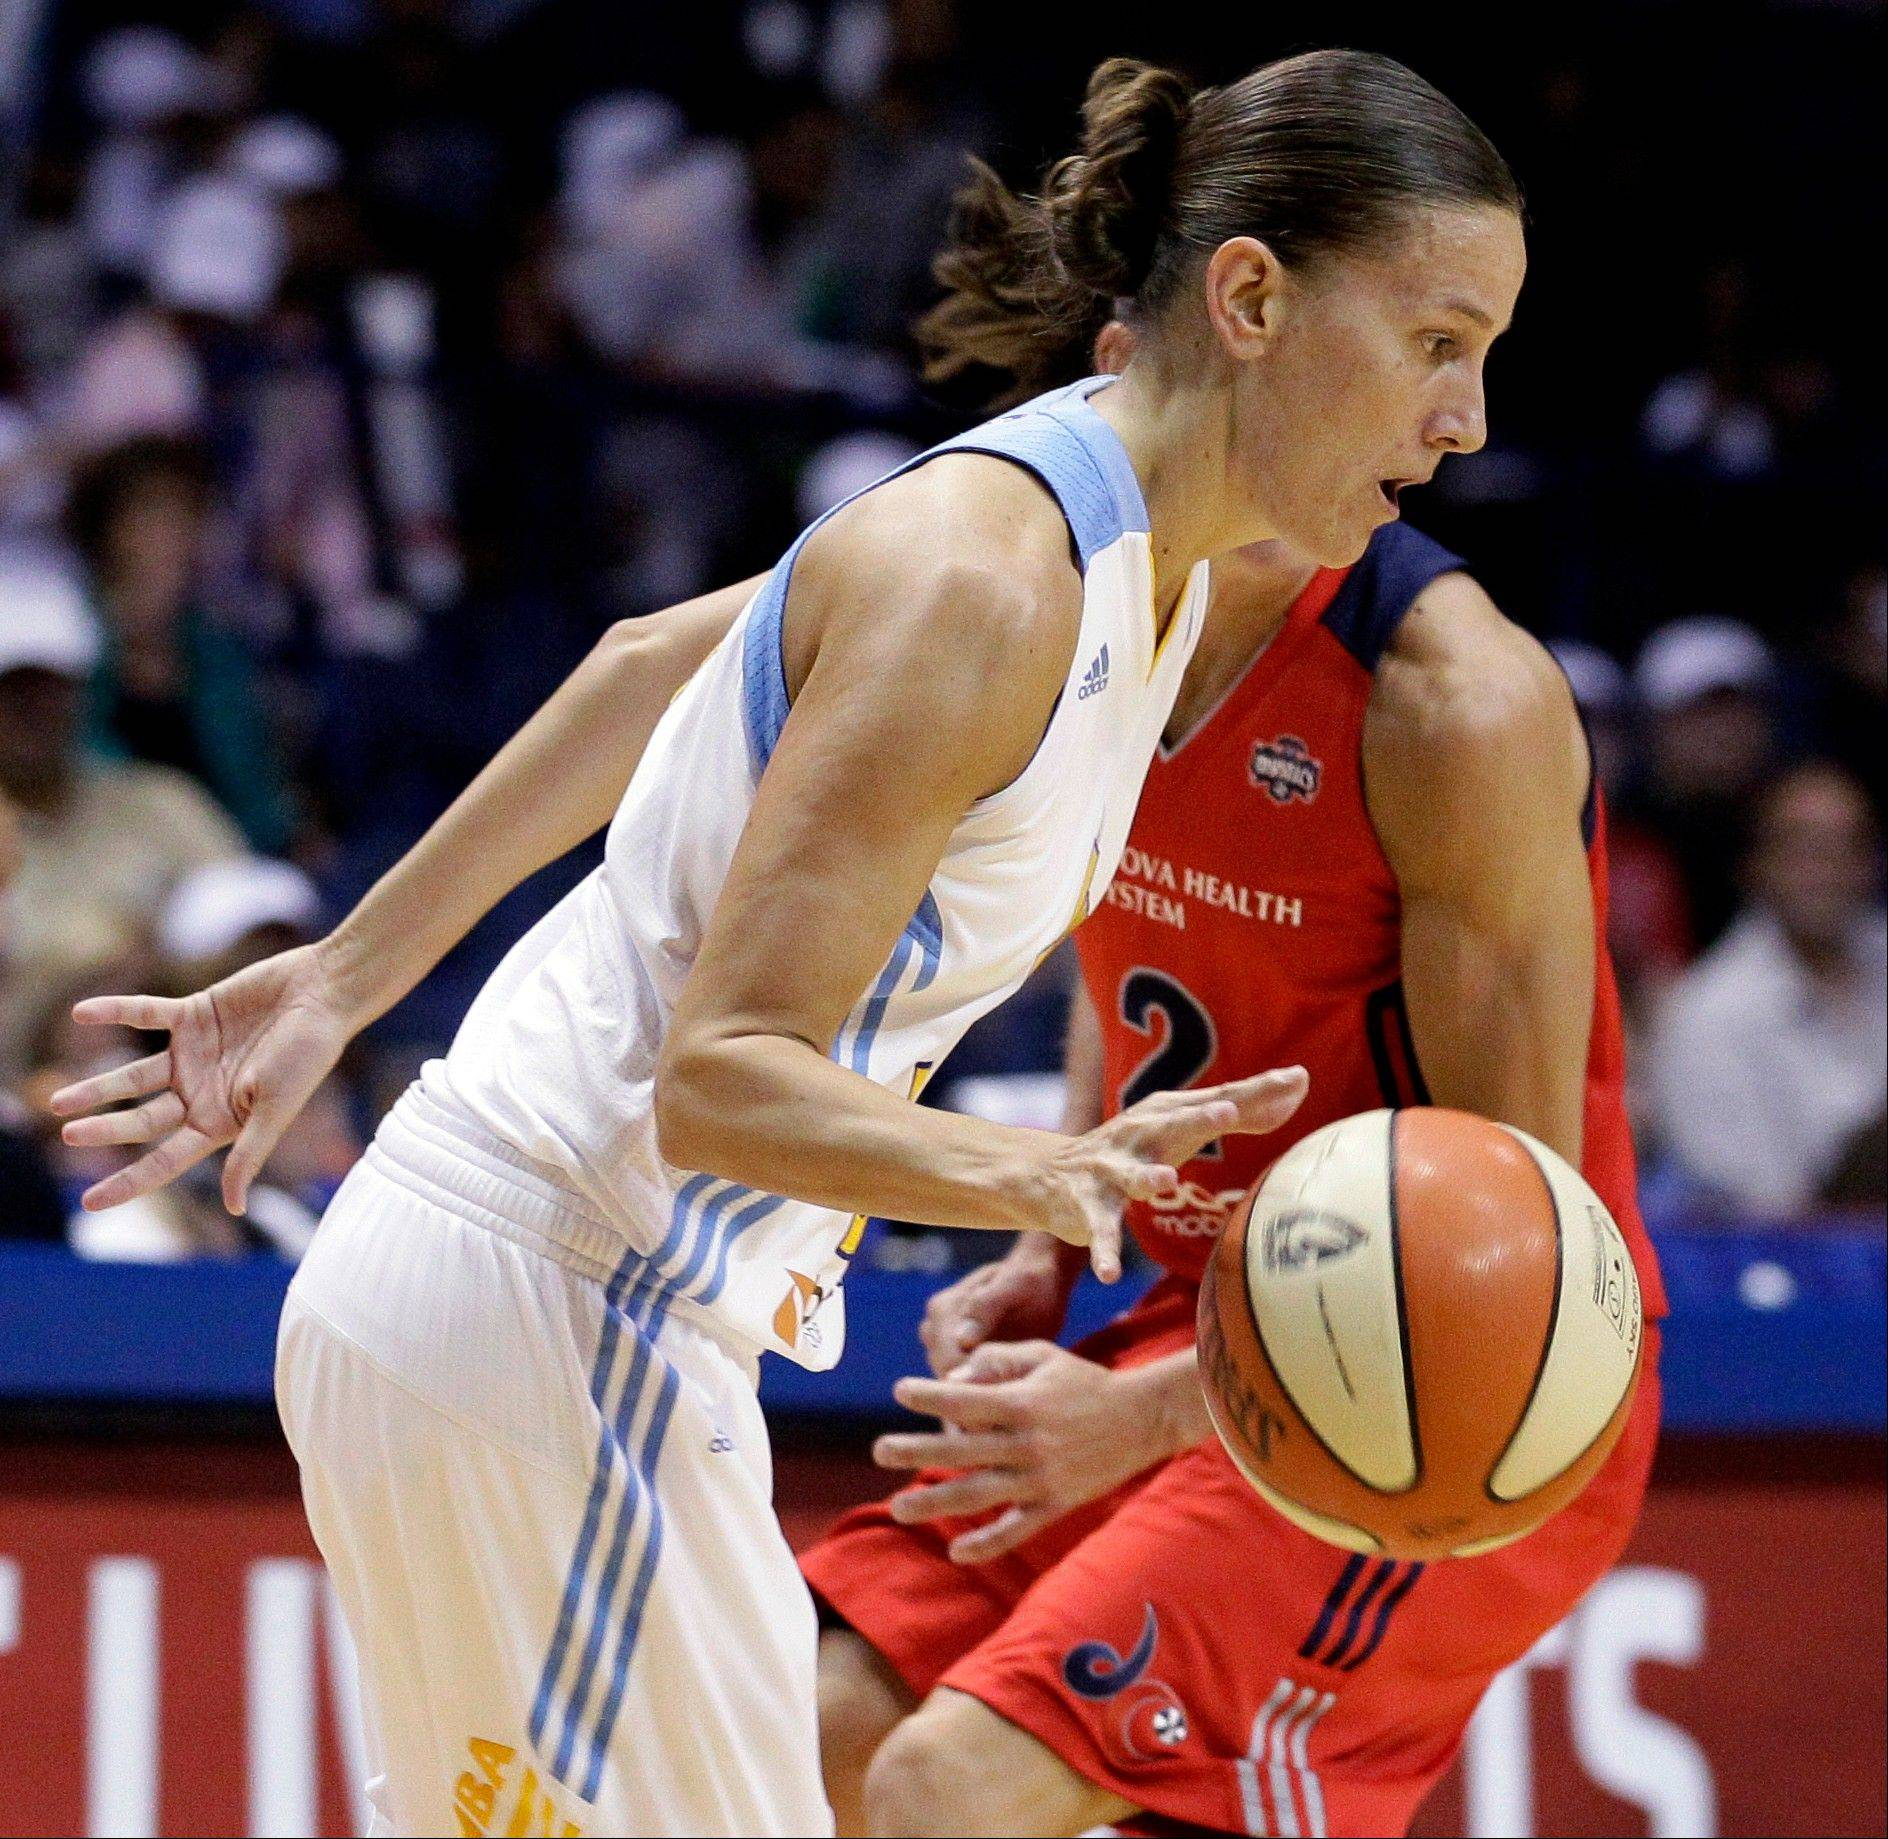 The Sky's Erin Thorn drives to the basket against the Mystics' Kelly Miller.